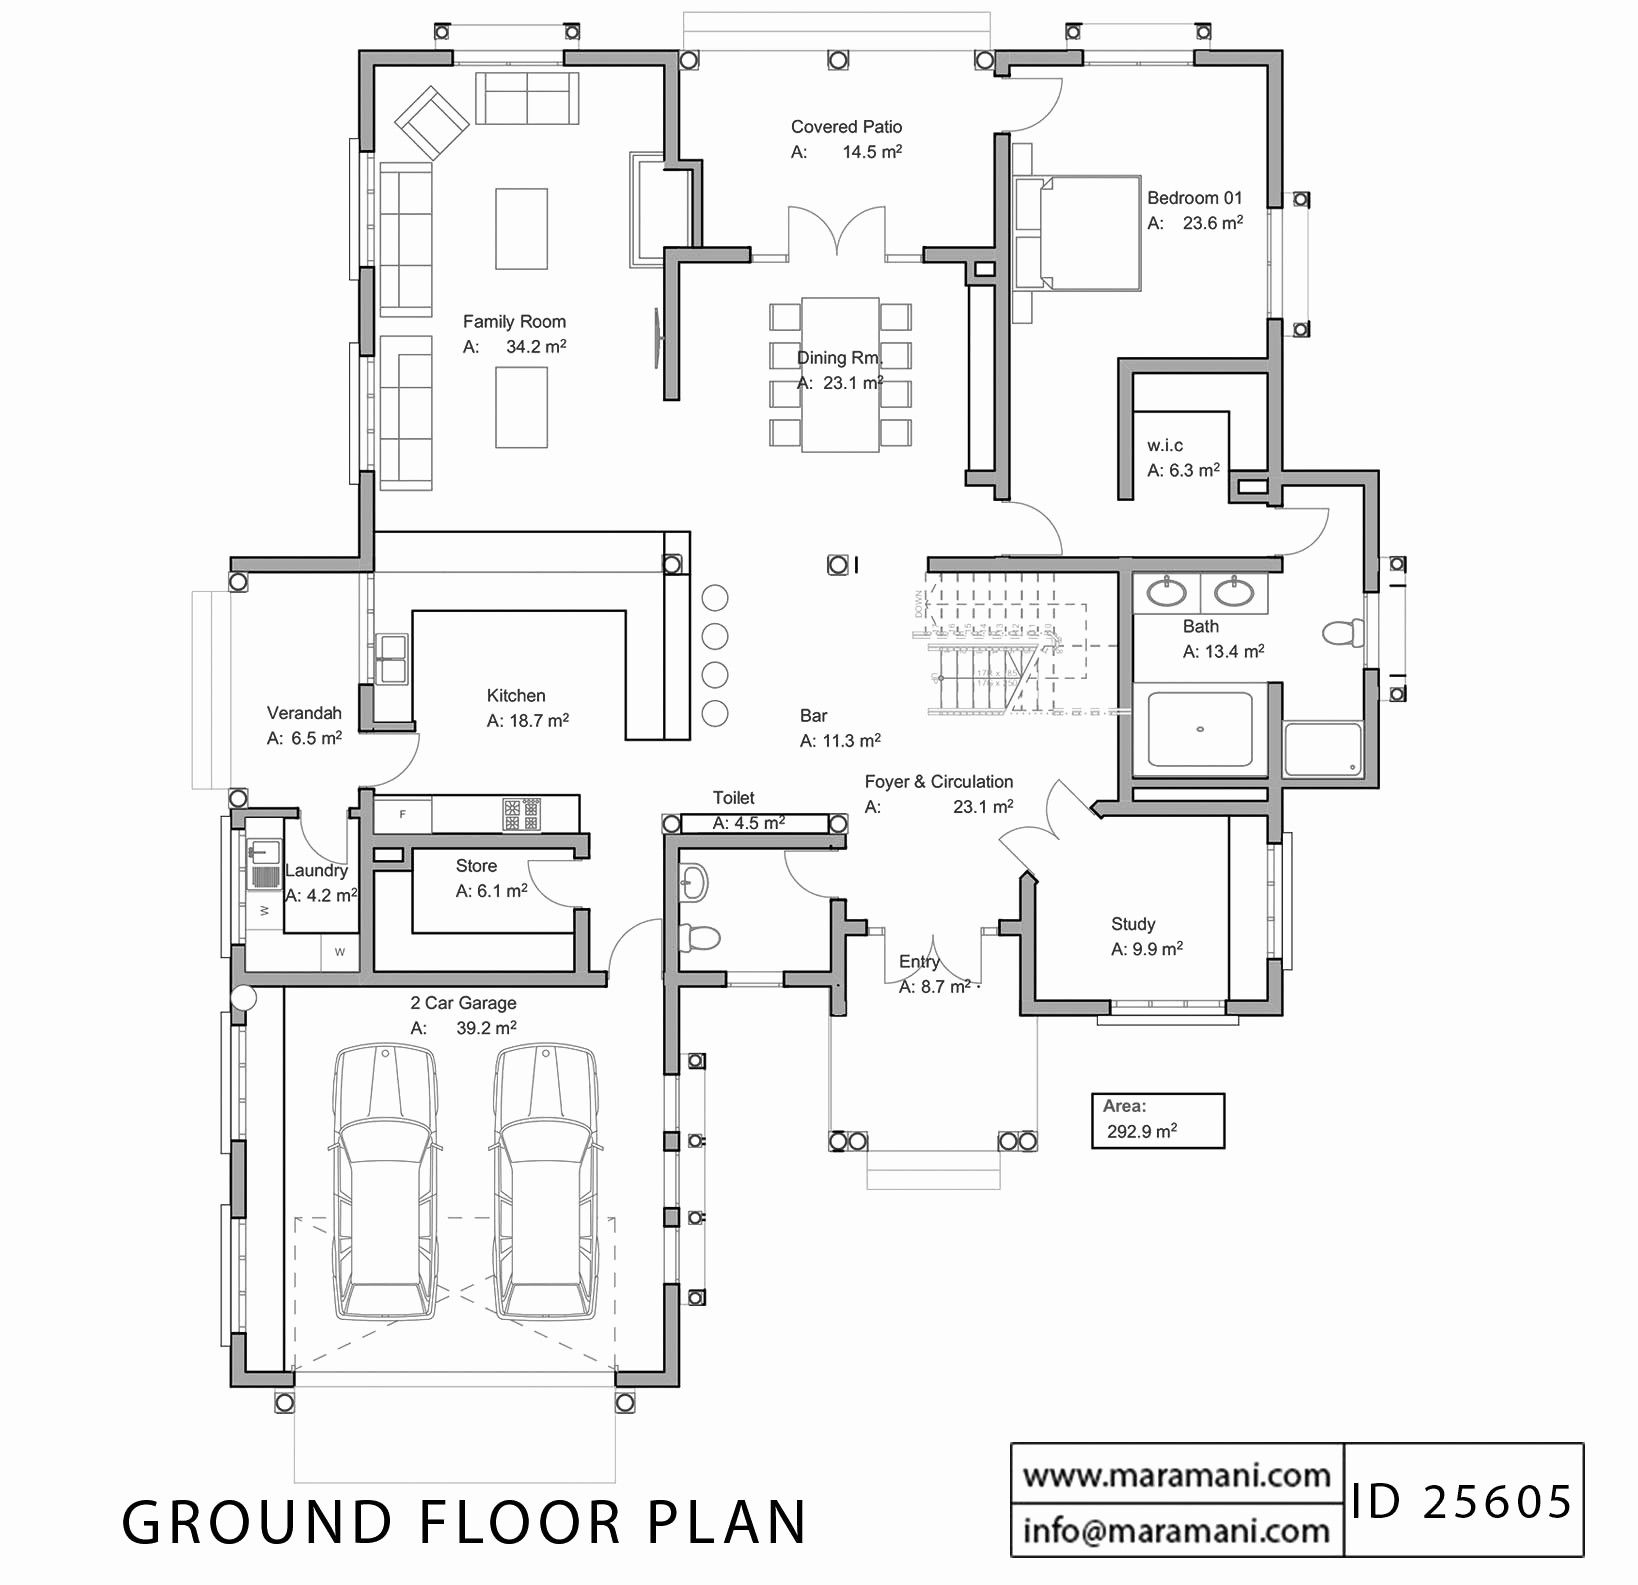 House Plans With Porte Cochere Luxury 50 Awesome French Cottage House Plans Floor Plans French Cottage